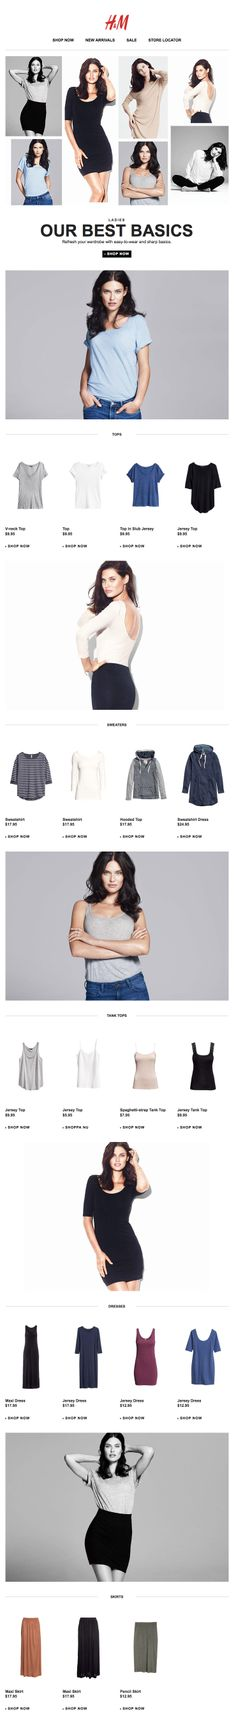 H&M newsletter, email design